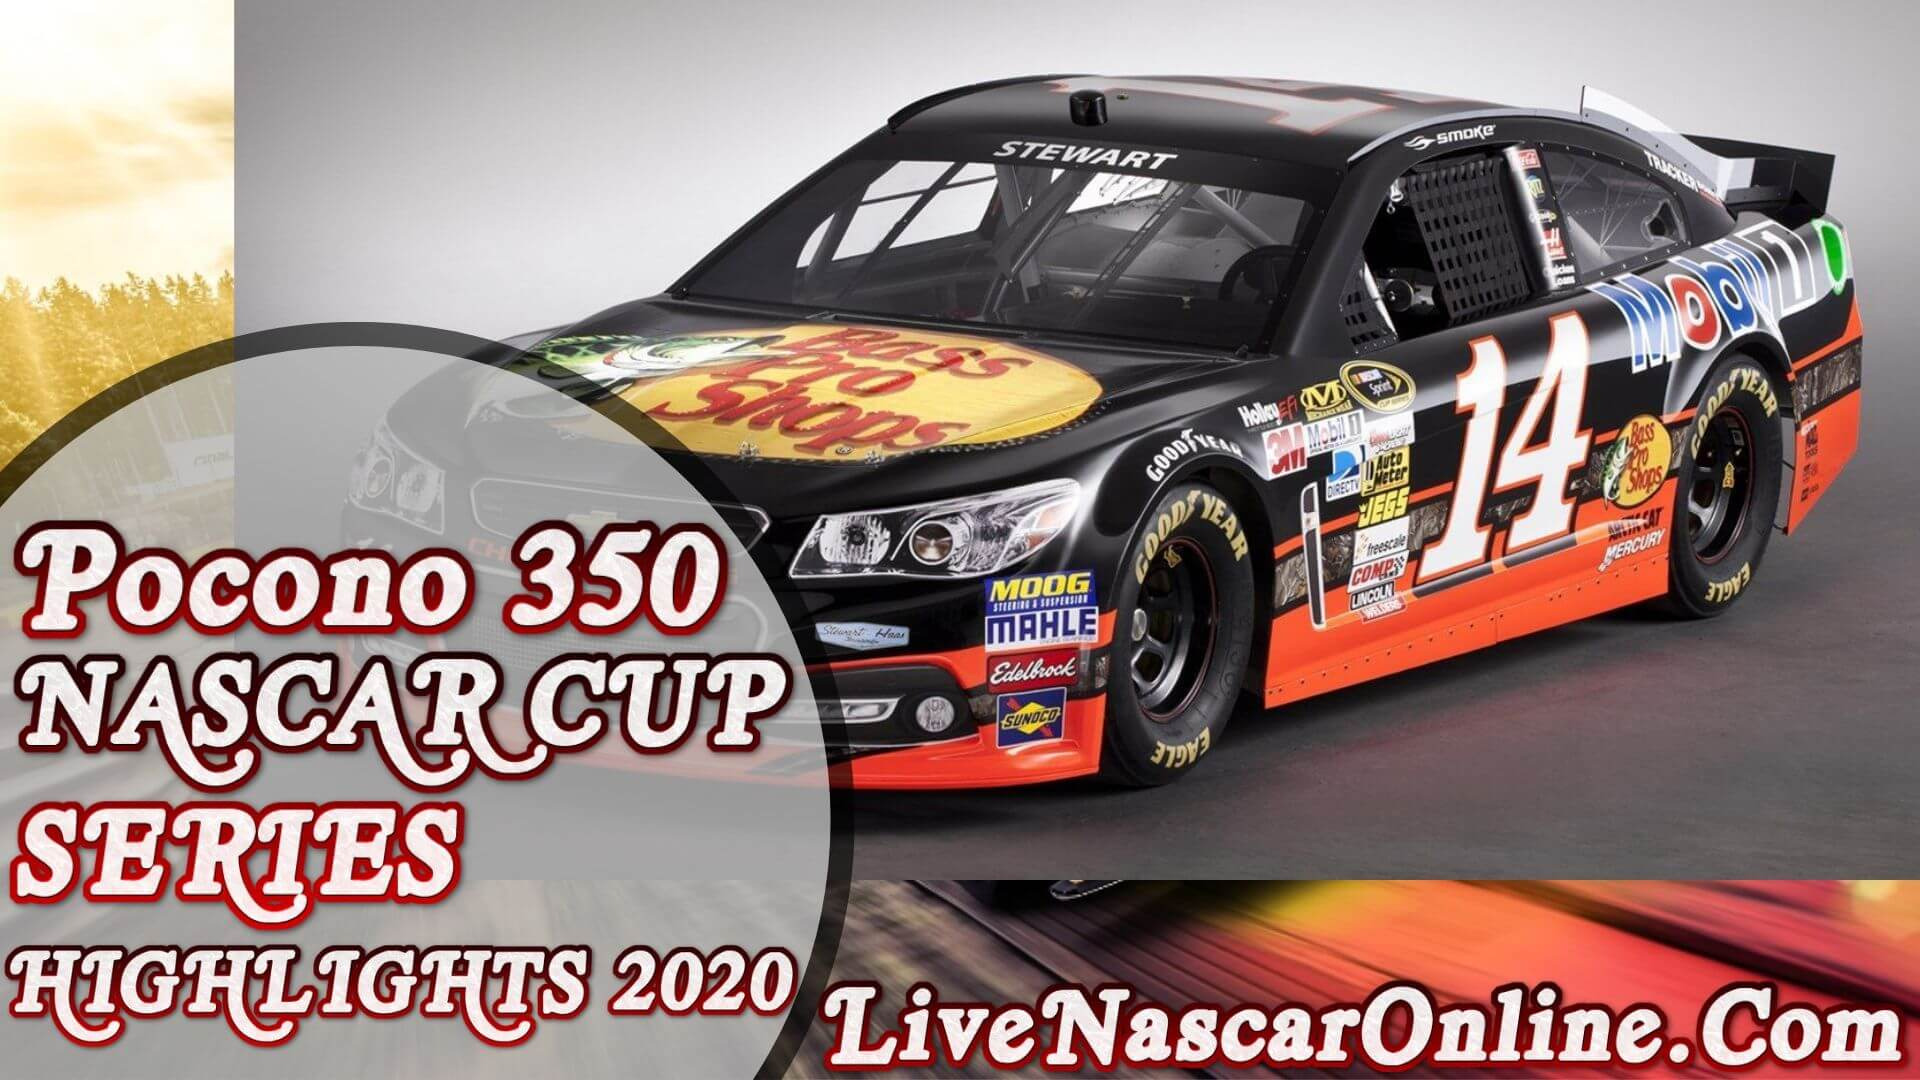 Pocono 350 NASCAR Cup Series Highlights 2020